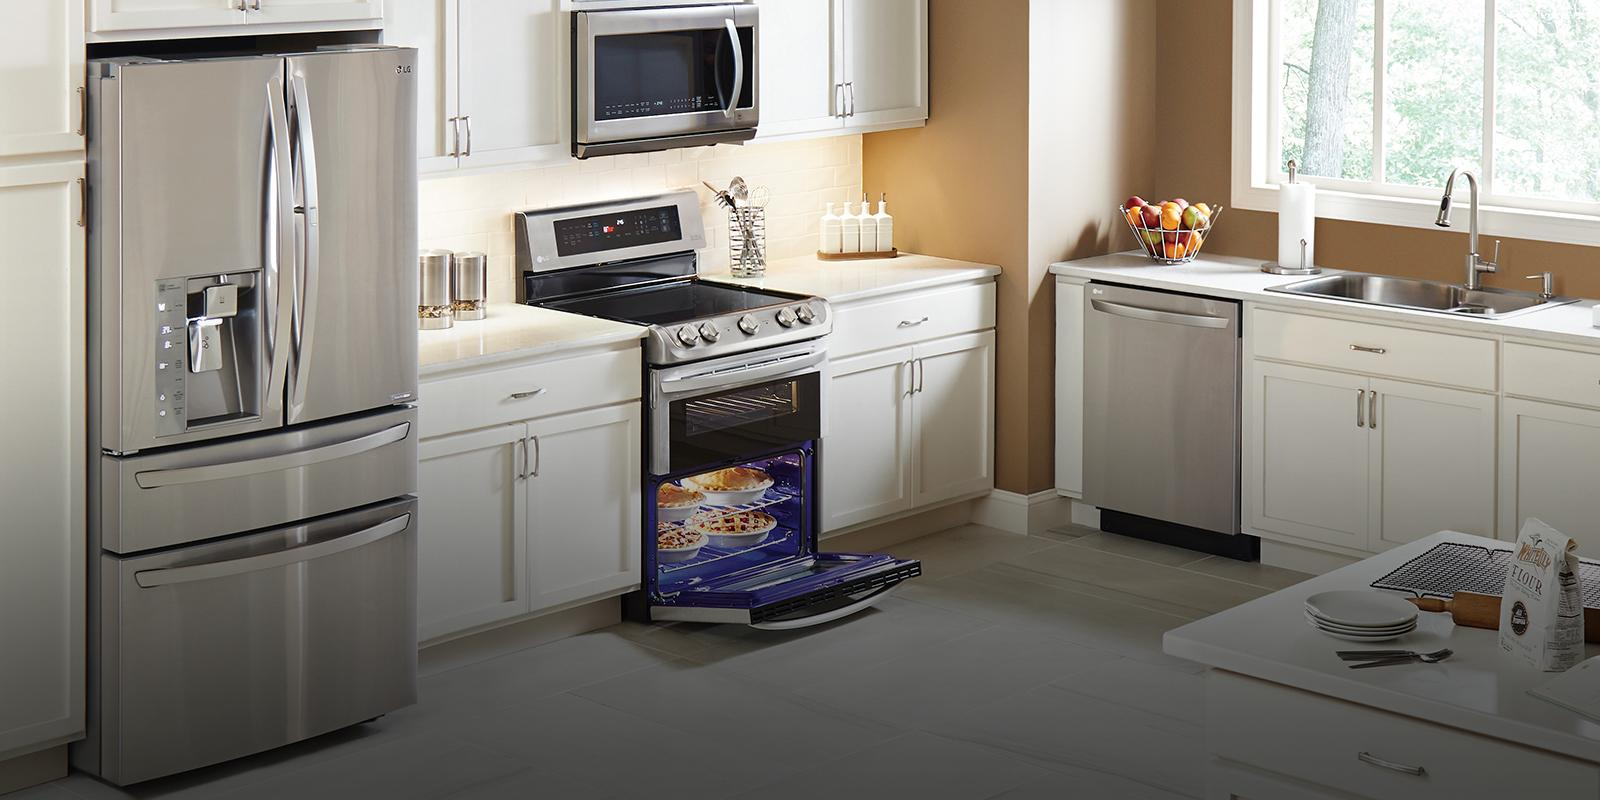 Uncategorized Kitchen Combo Appliances lg appliances compare kitchen home usa bring the cutting edge back to kitchen